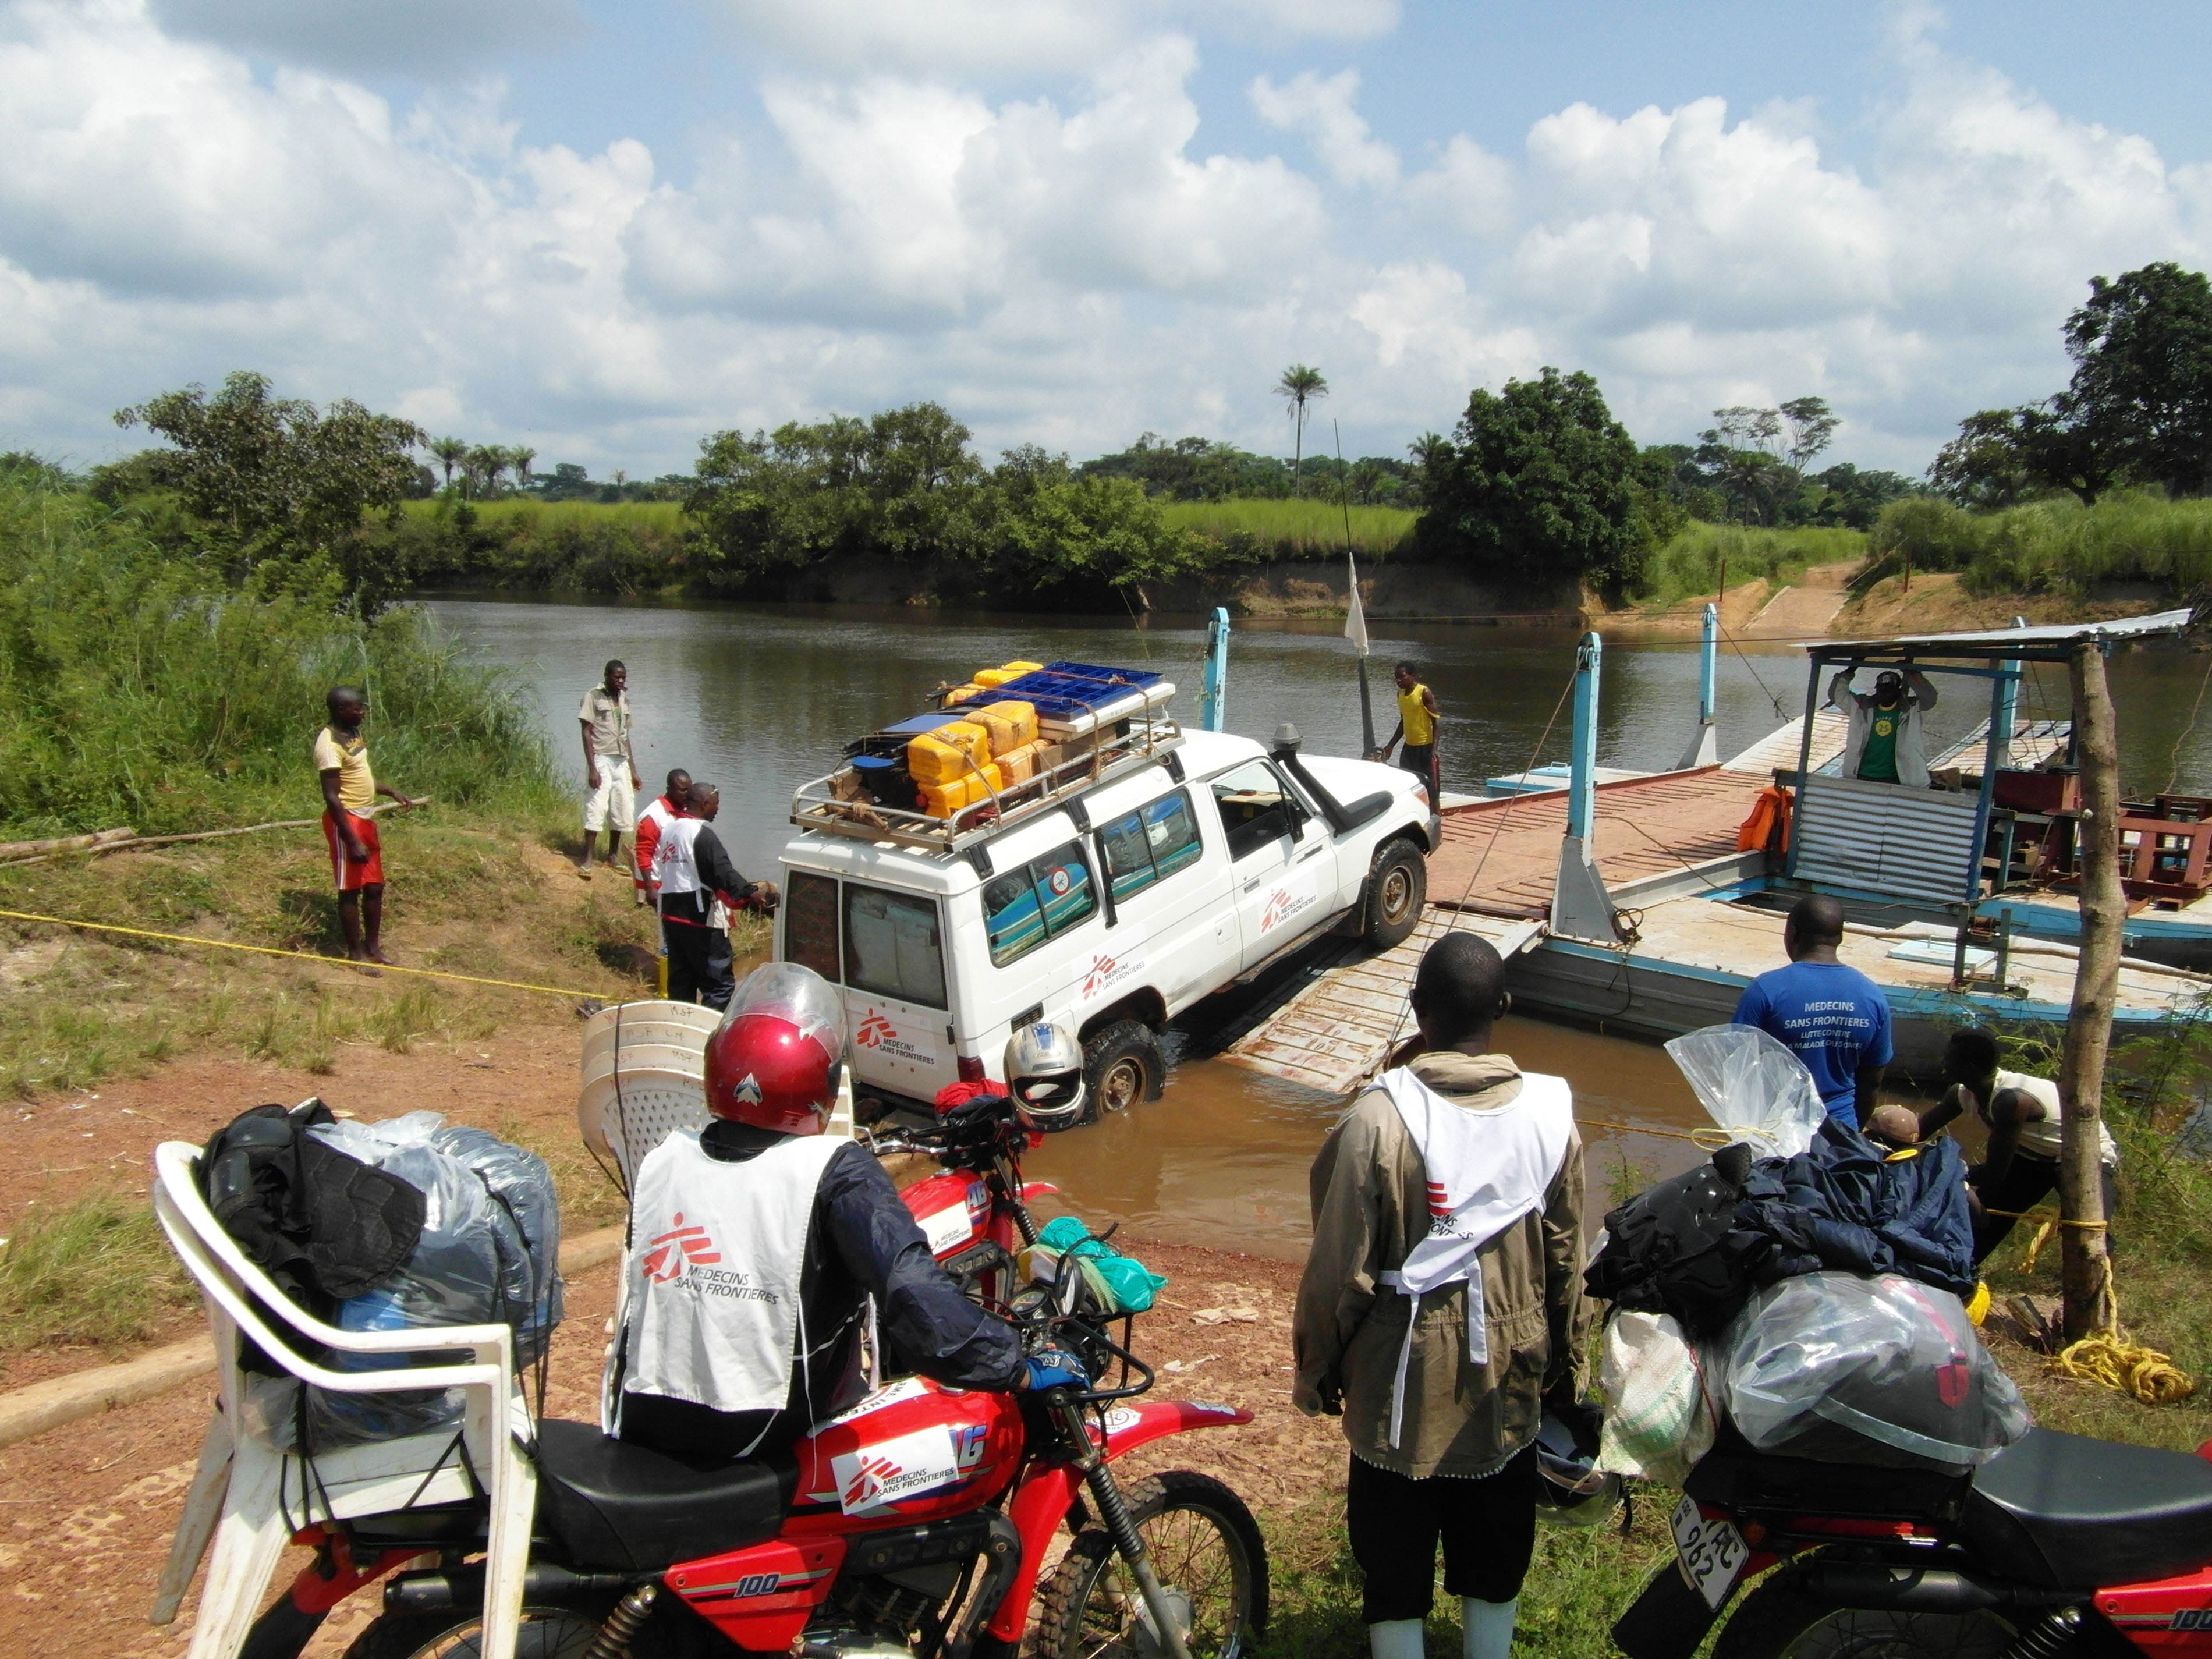 MSF mobile medical team crosses the river with cars and motorbikes to reach remote villages.